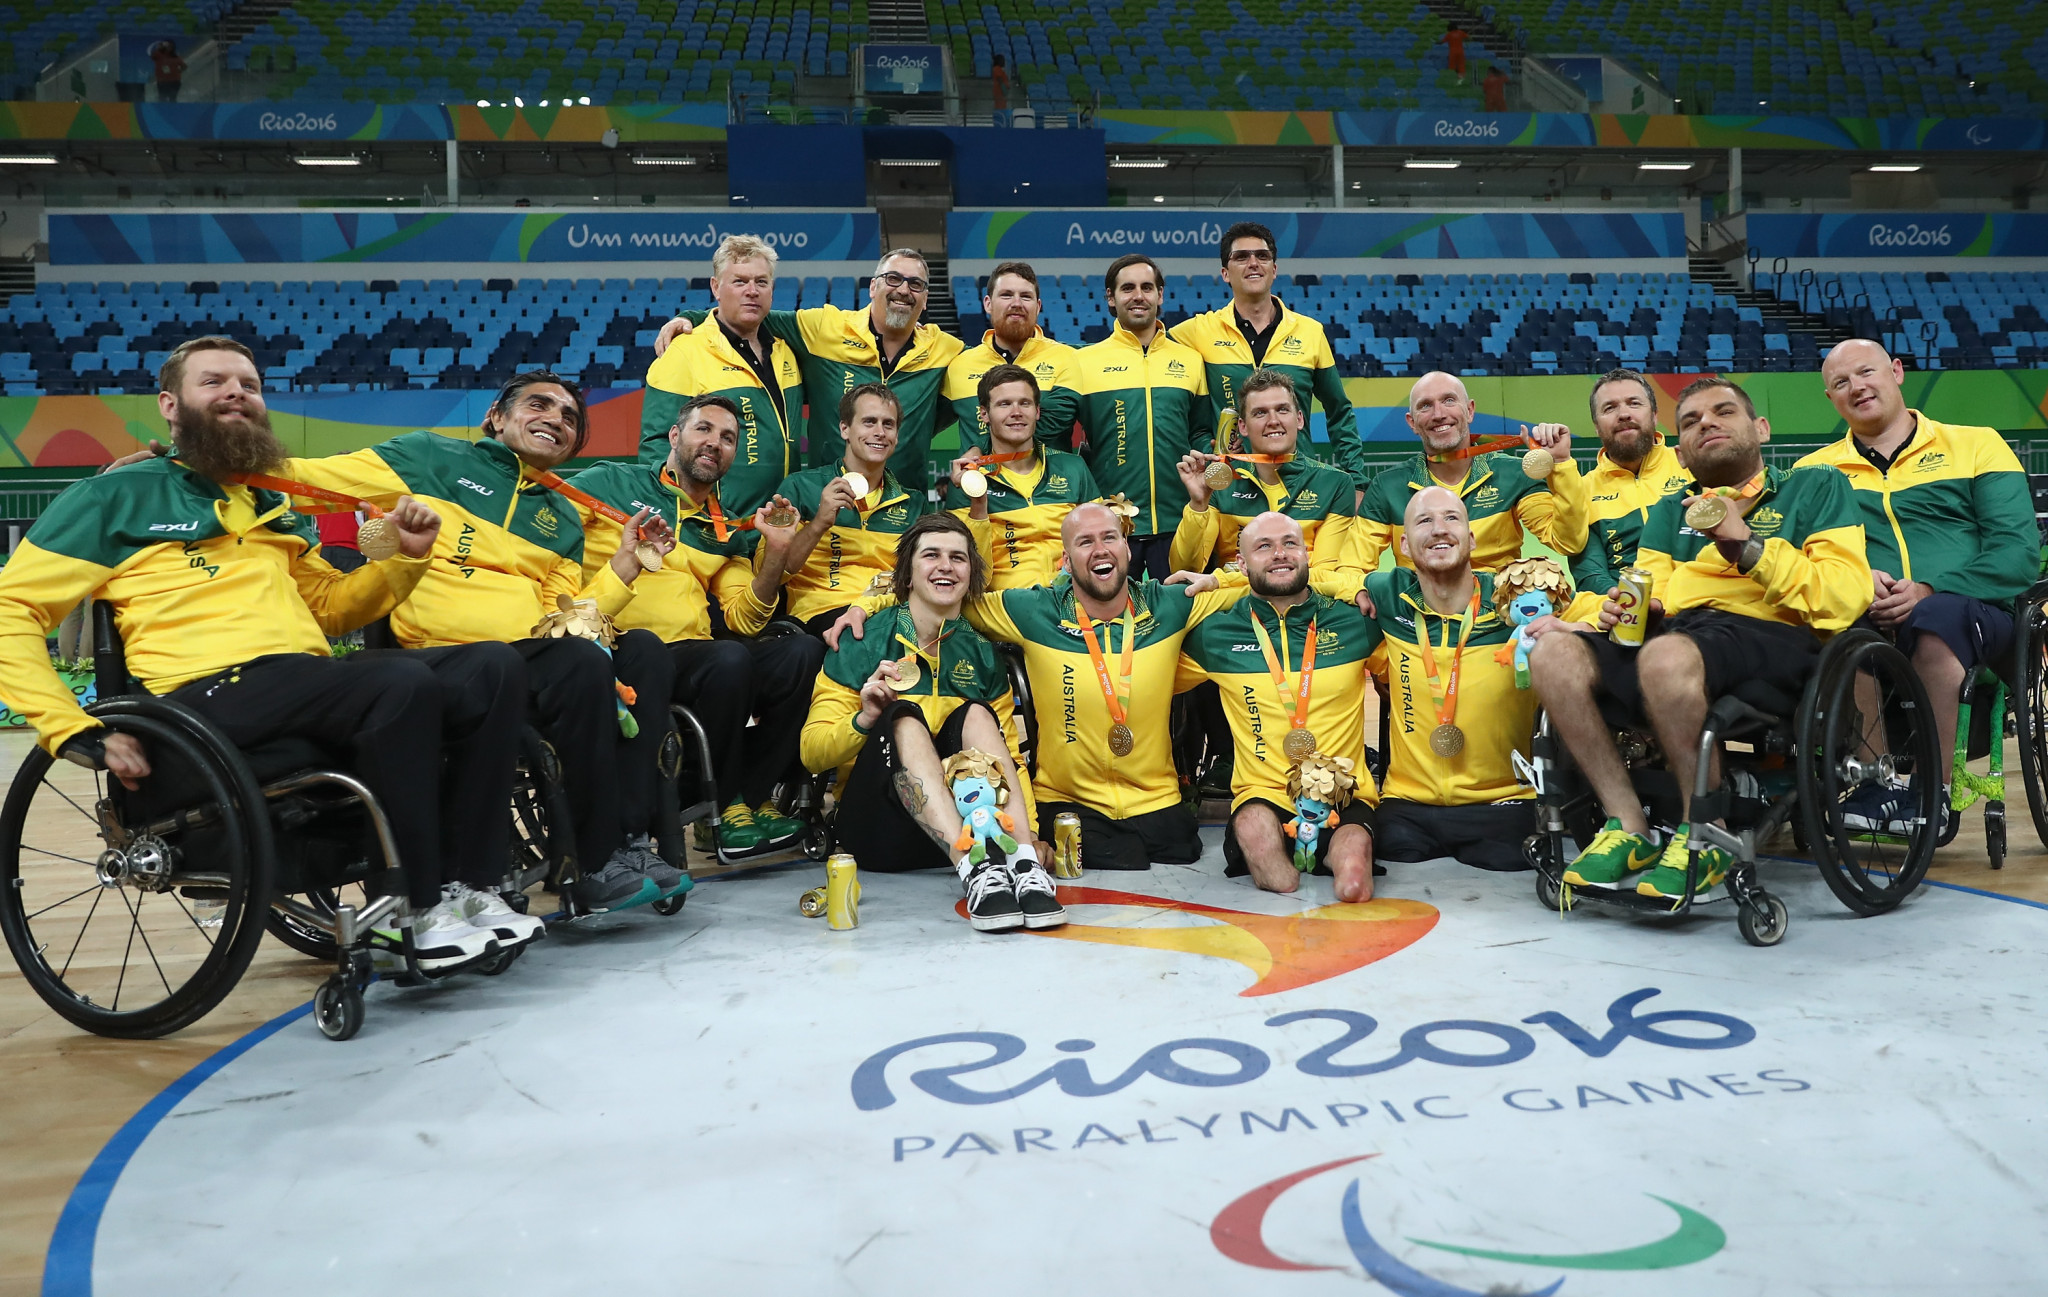 Australia will be chasing a record third consecutive Paralympic Games gold medal in wheelchair rugby at Tokyo 2020, having won at London 2012 and Rio 2016 ©Getty Images